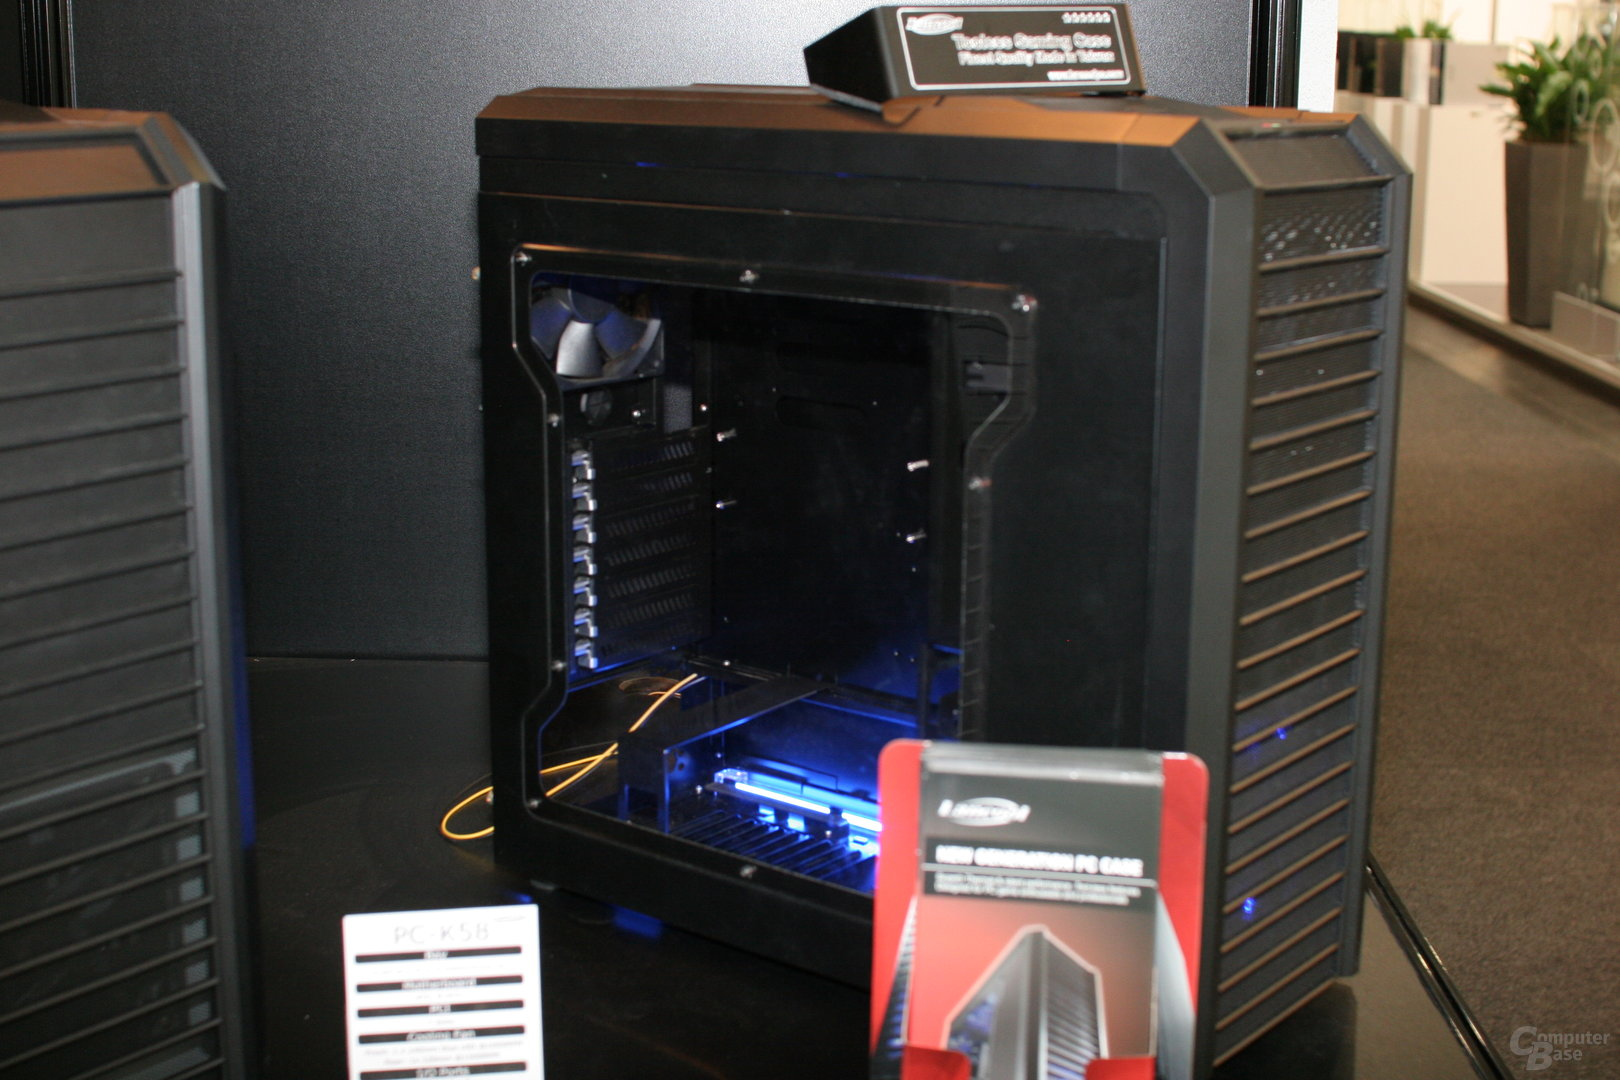 Lancool PC-K62